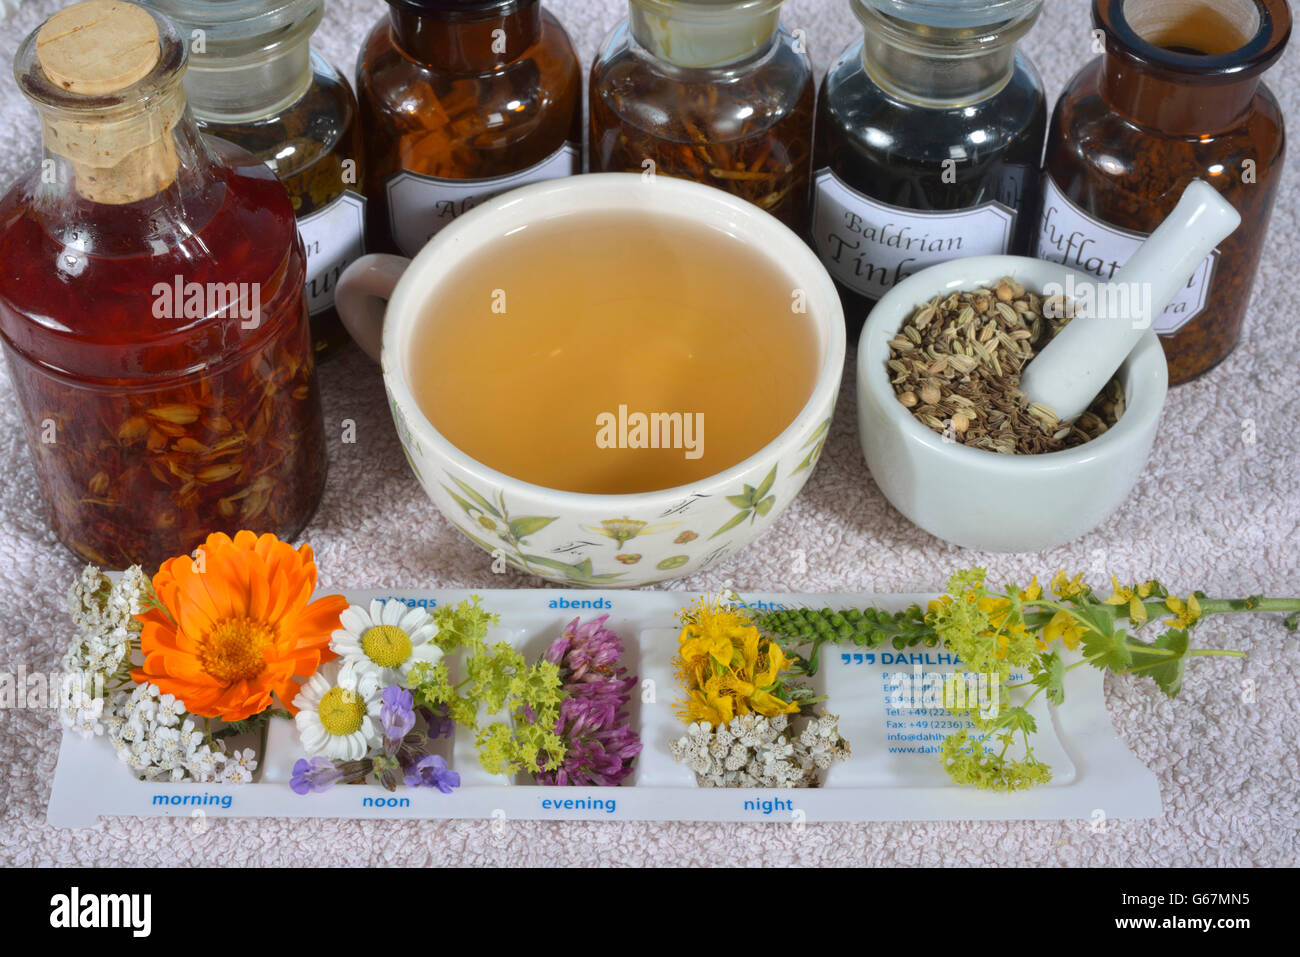 Daily pill box and healing plants - Stock Image